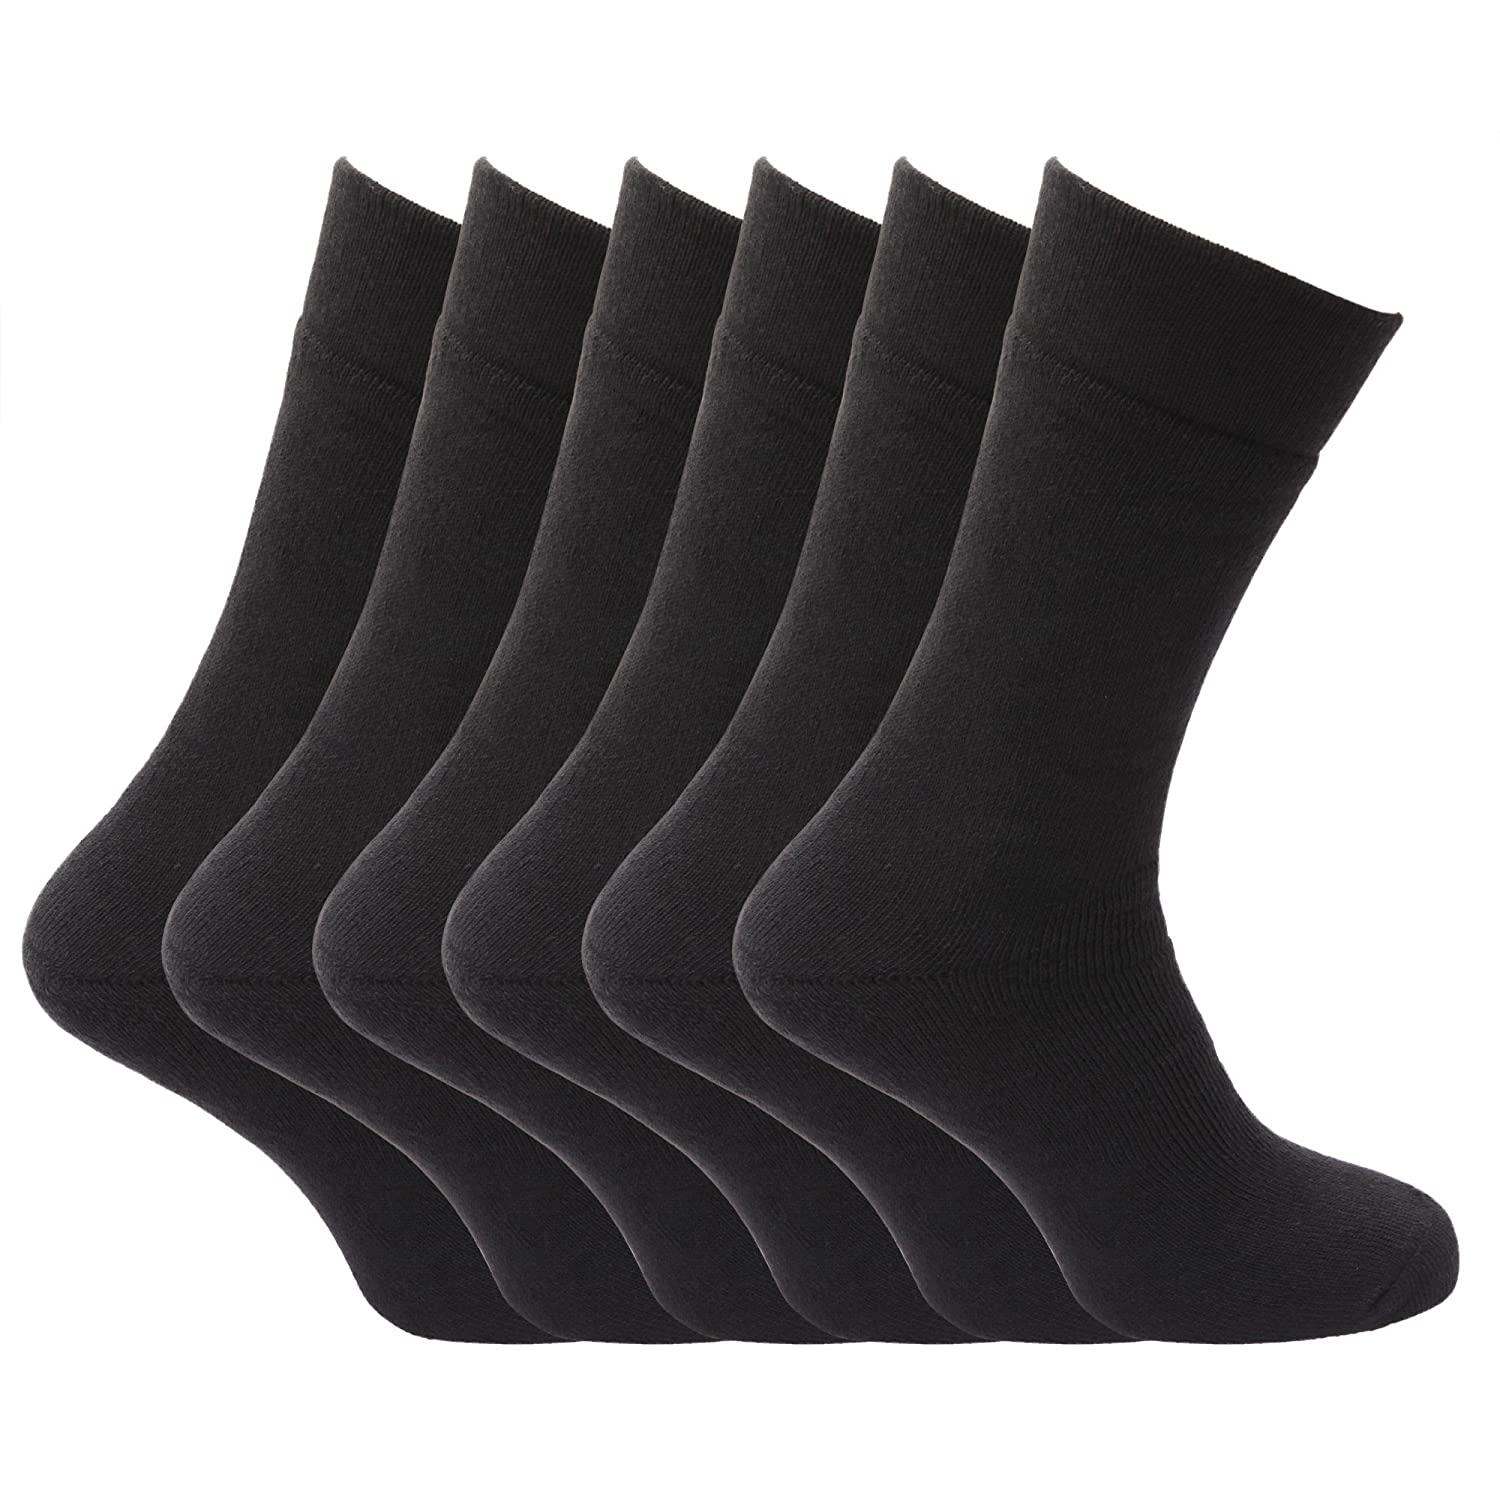 US Shoe 6.5-11.5 Pack of 6 Black Mens Non Elastic Extra Soft Top Warm Thermal Socks